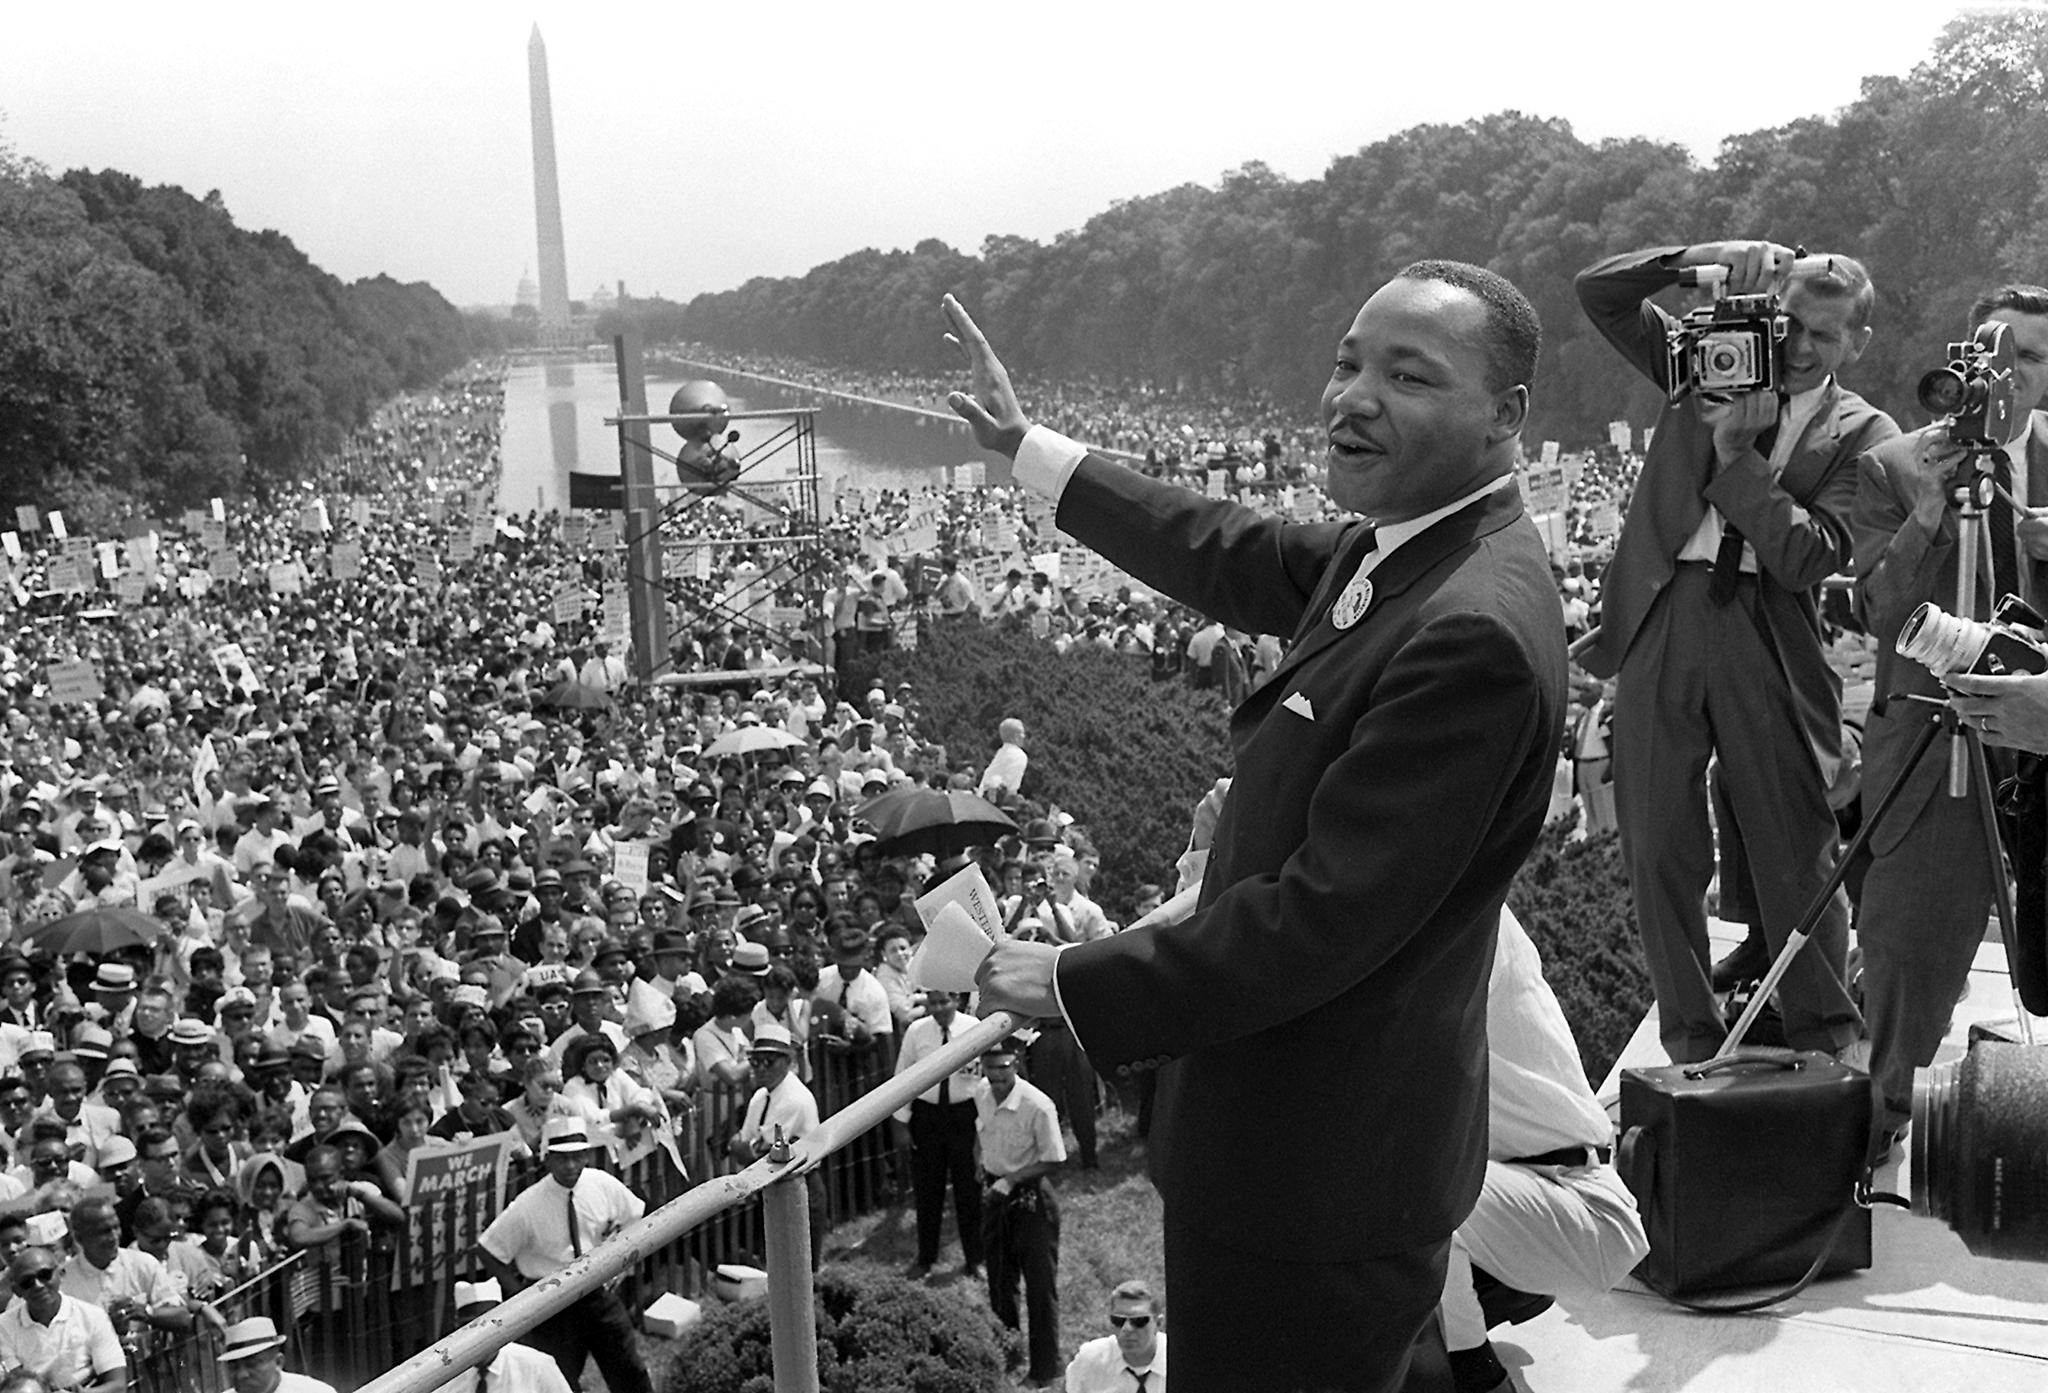 'I HAVE A DREAM' DISSE MARTIN LUTHER KING